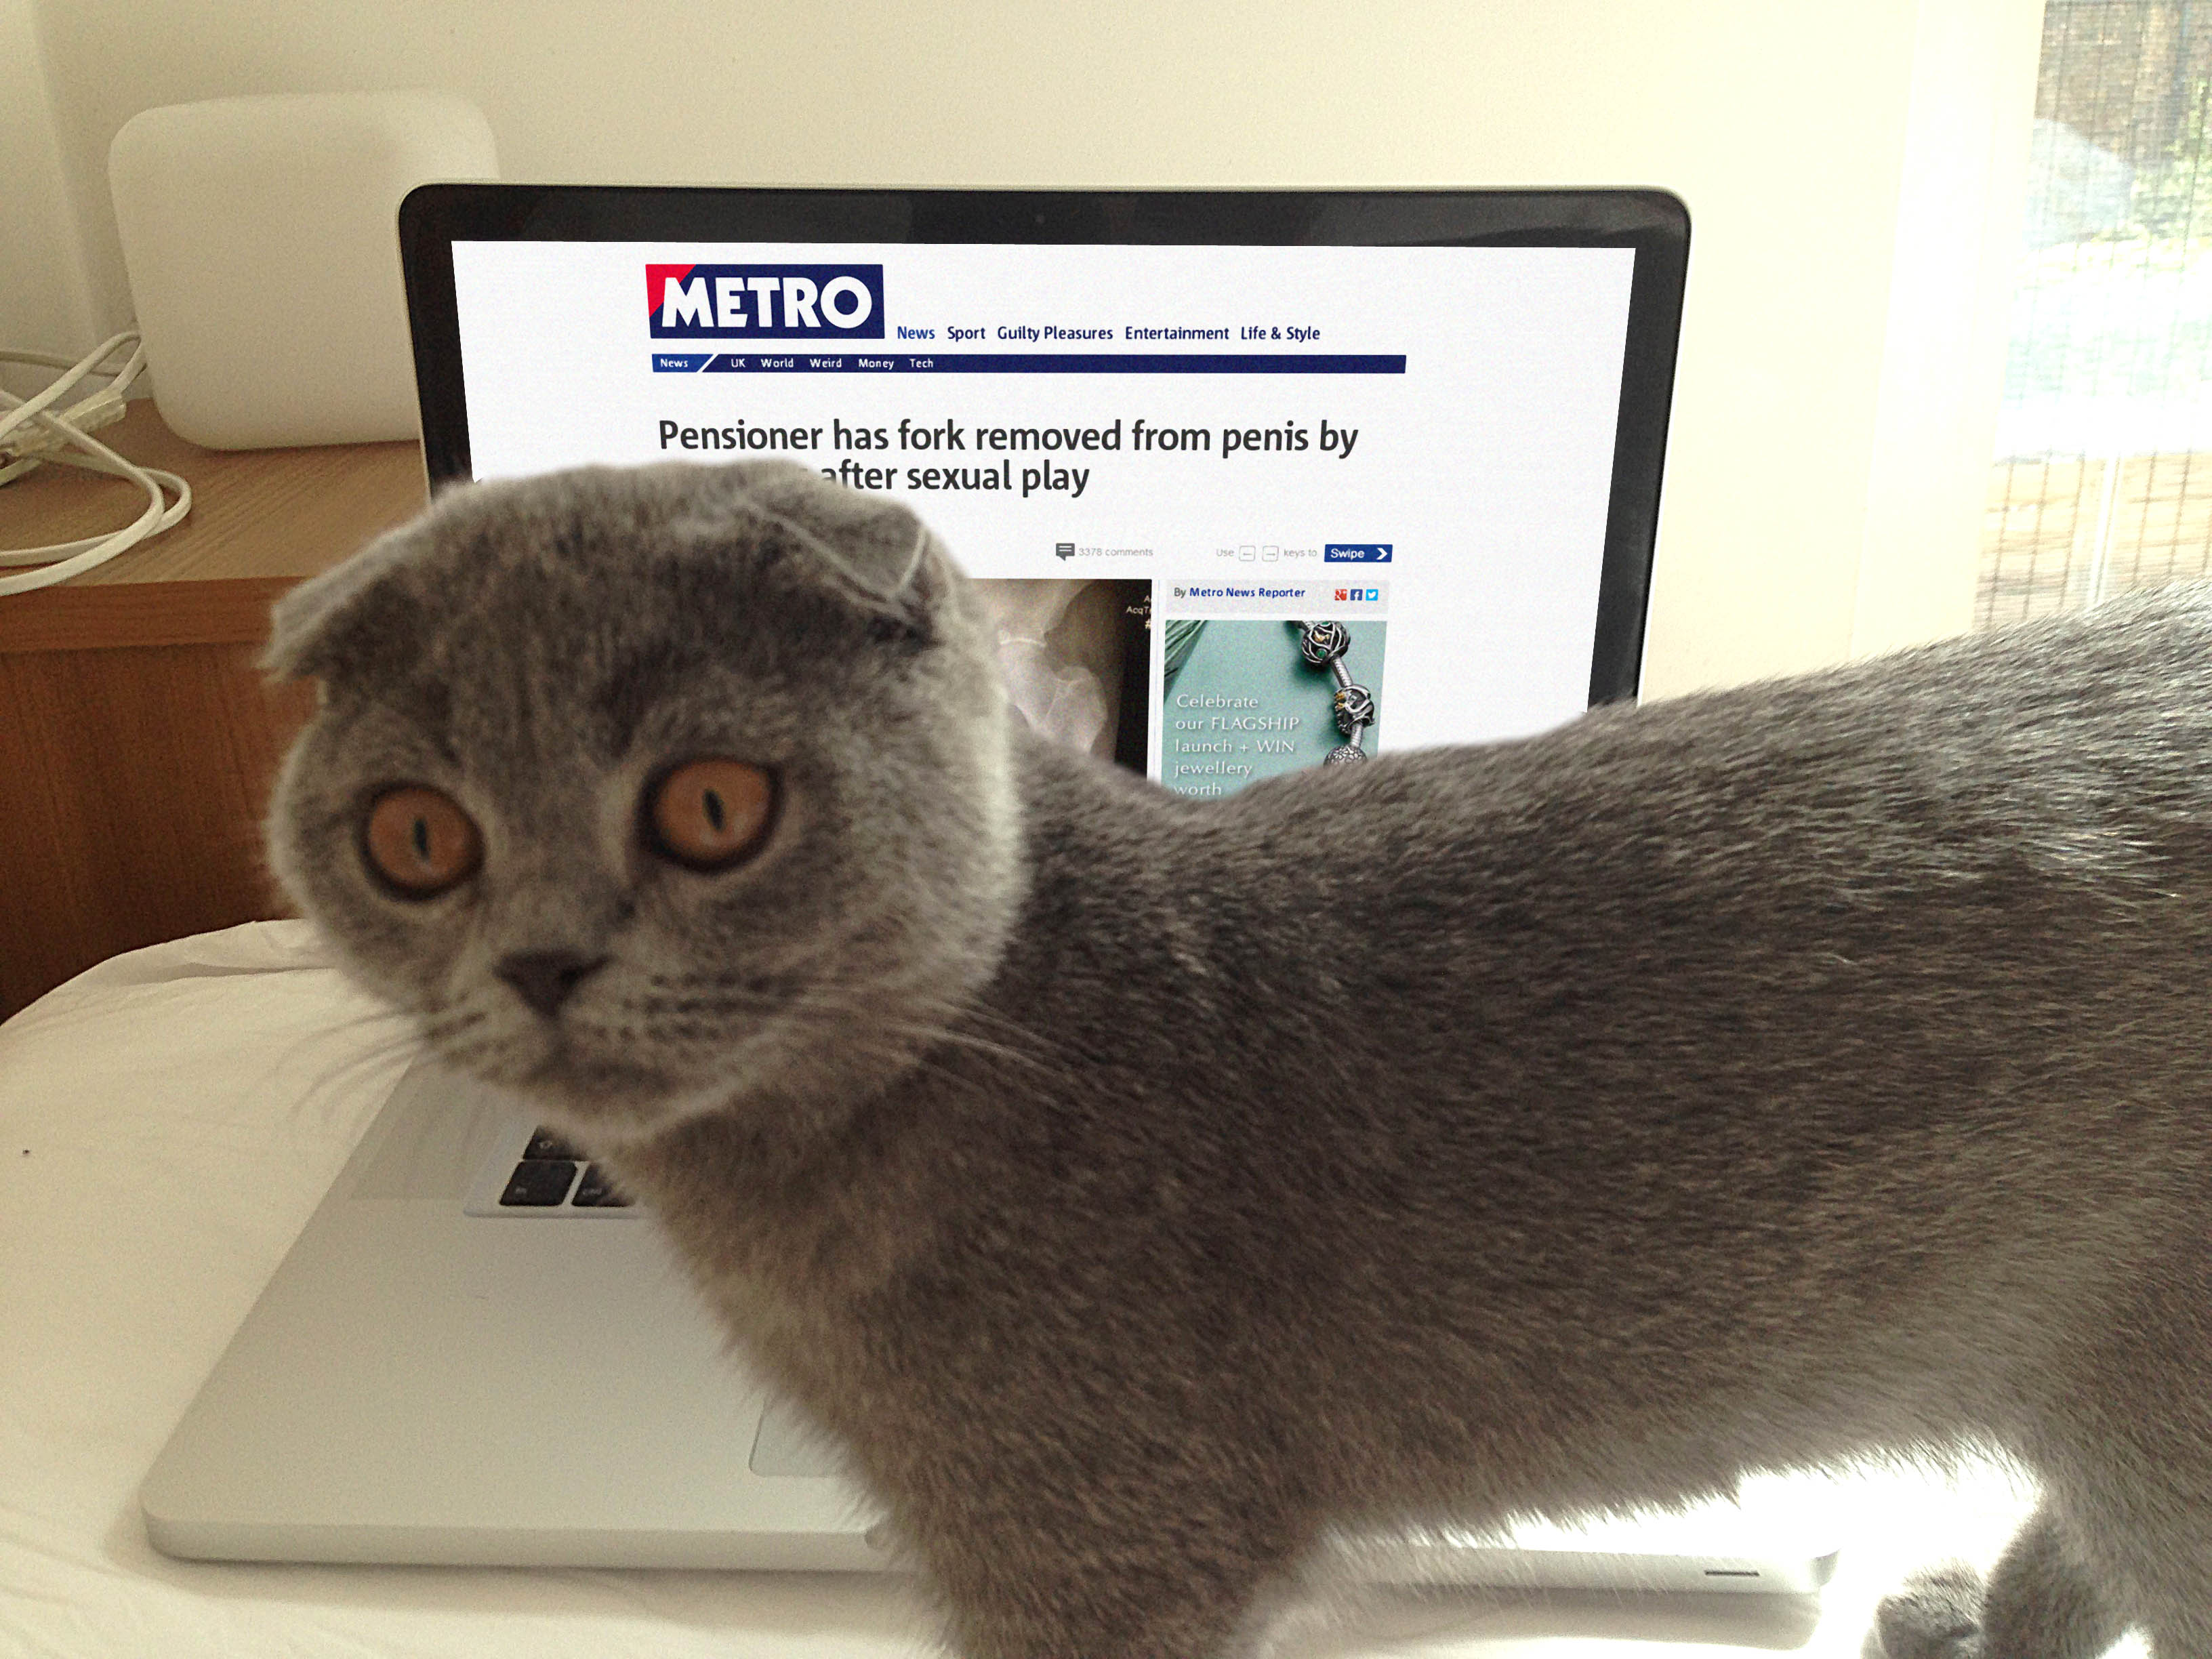 London's cutest cat update: How fame has changed Polly Ninan